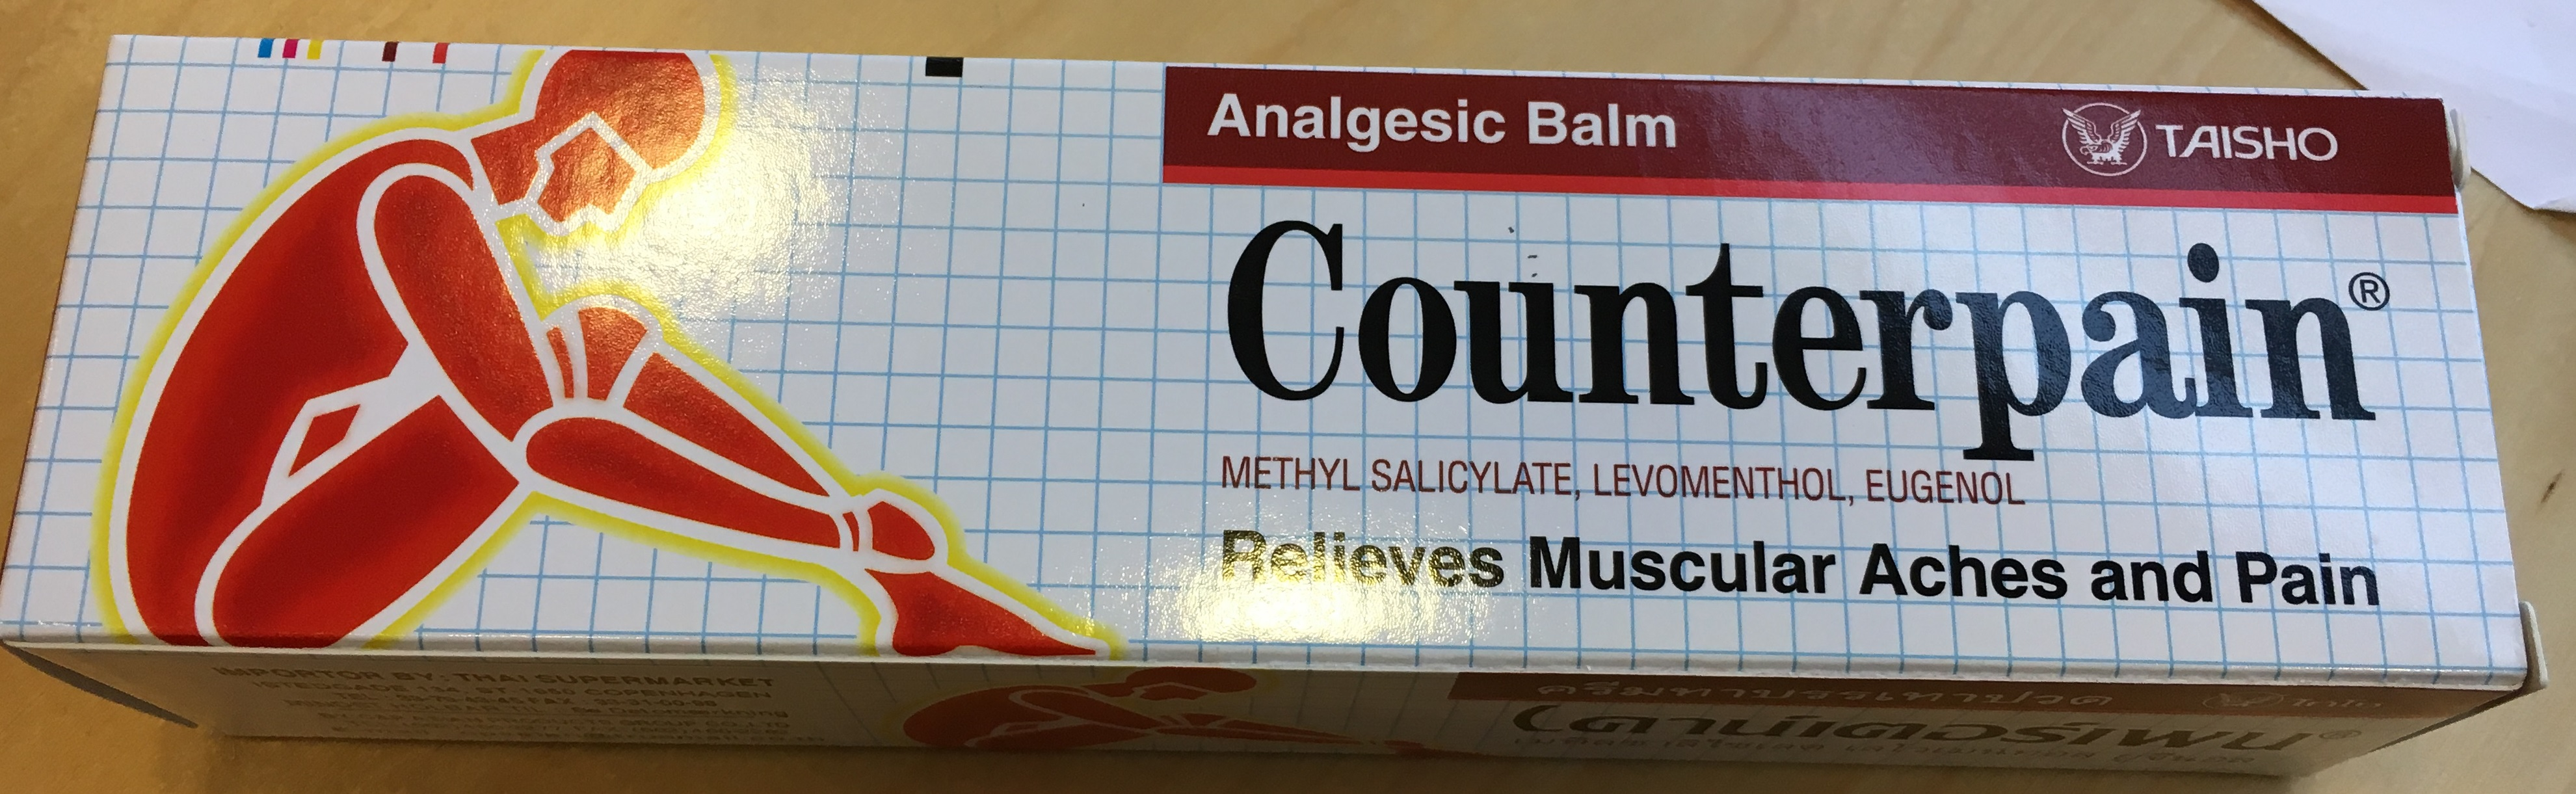 Image of the illigal product: Counterpain Analgesic Balm